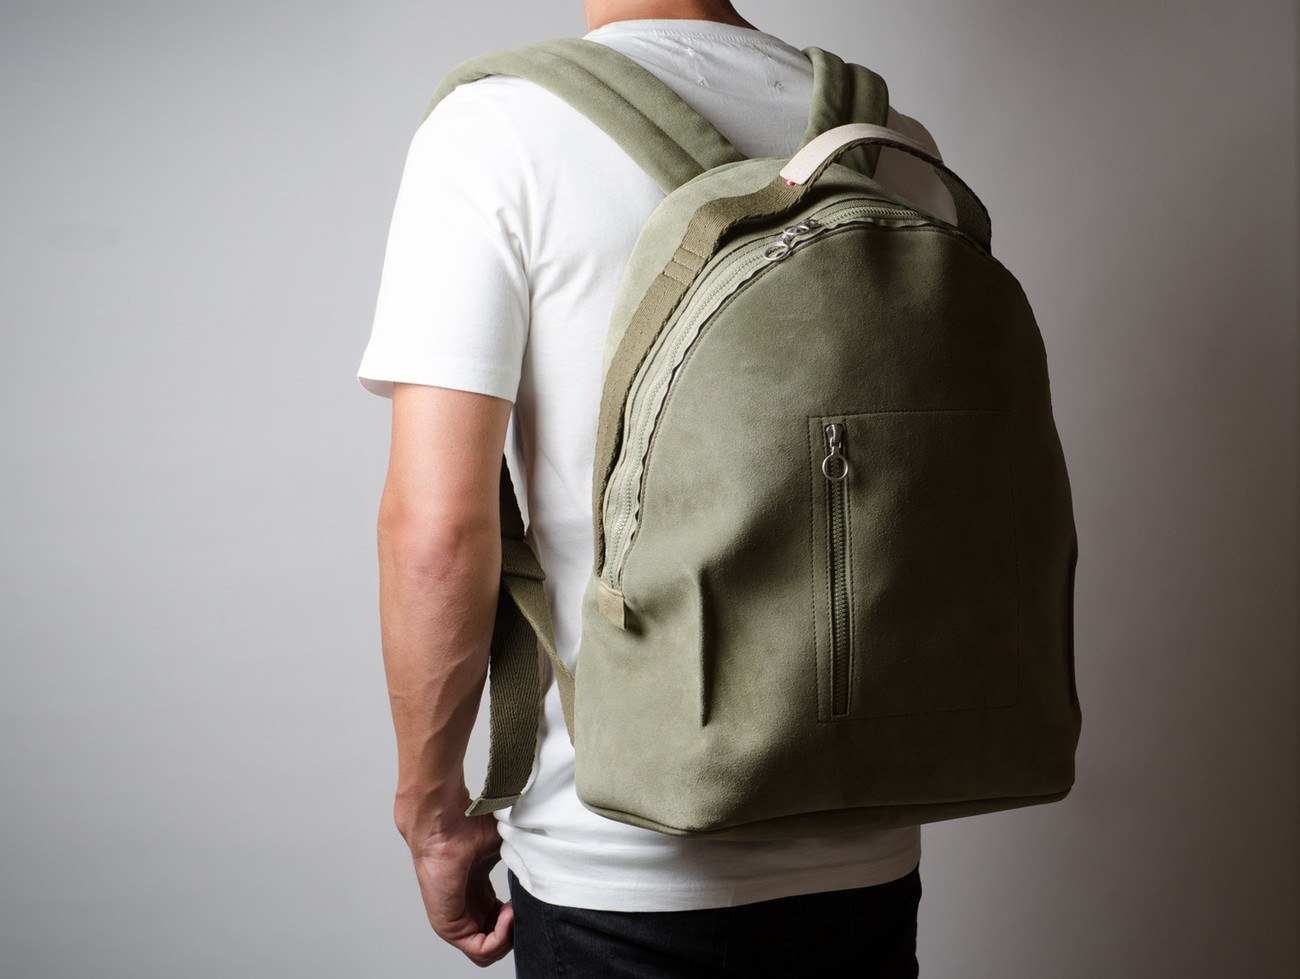 Backpack+L.+Volume+One+By+Hard+Graft